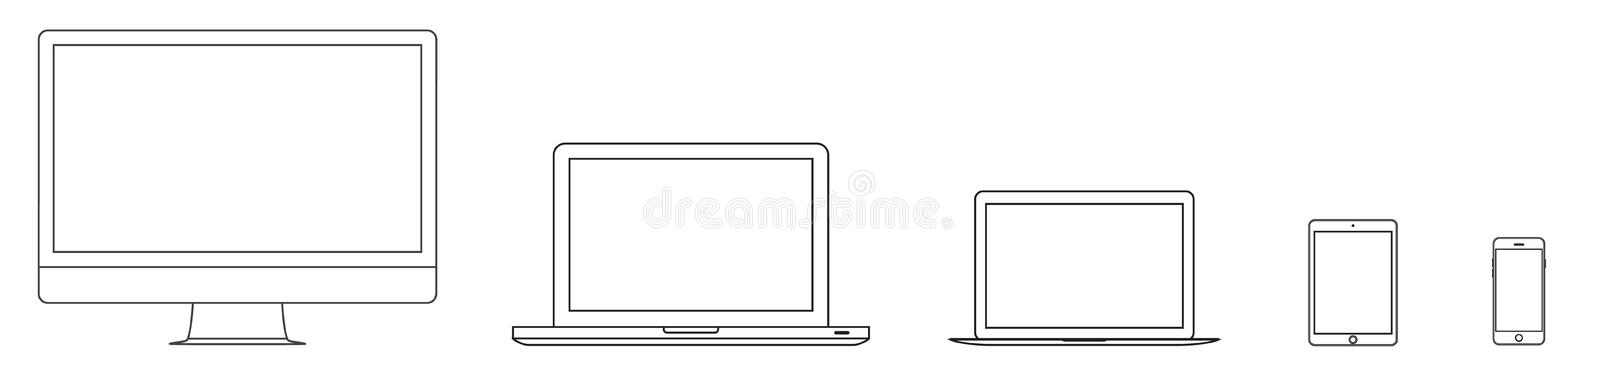 Mockup gadget and device outline icons set on the white background. stock vector illustration eps10 stock illustration